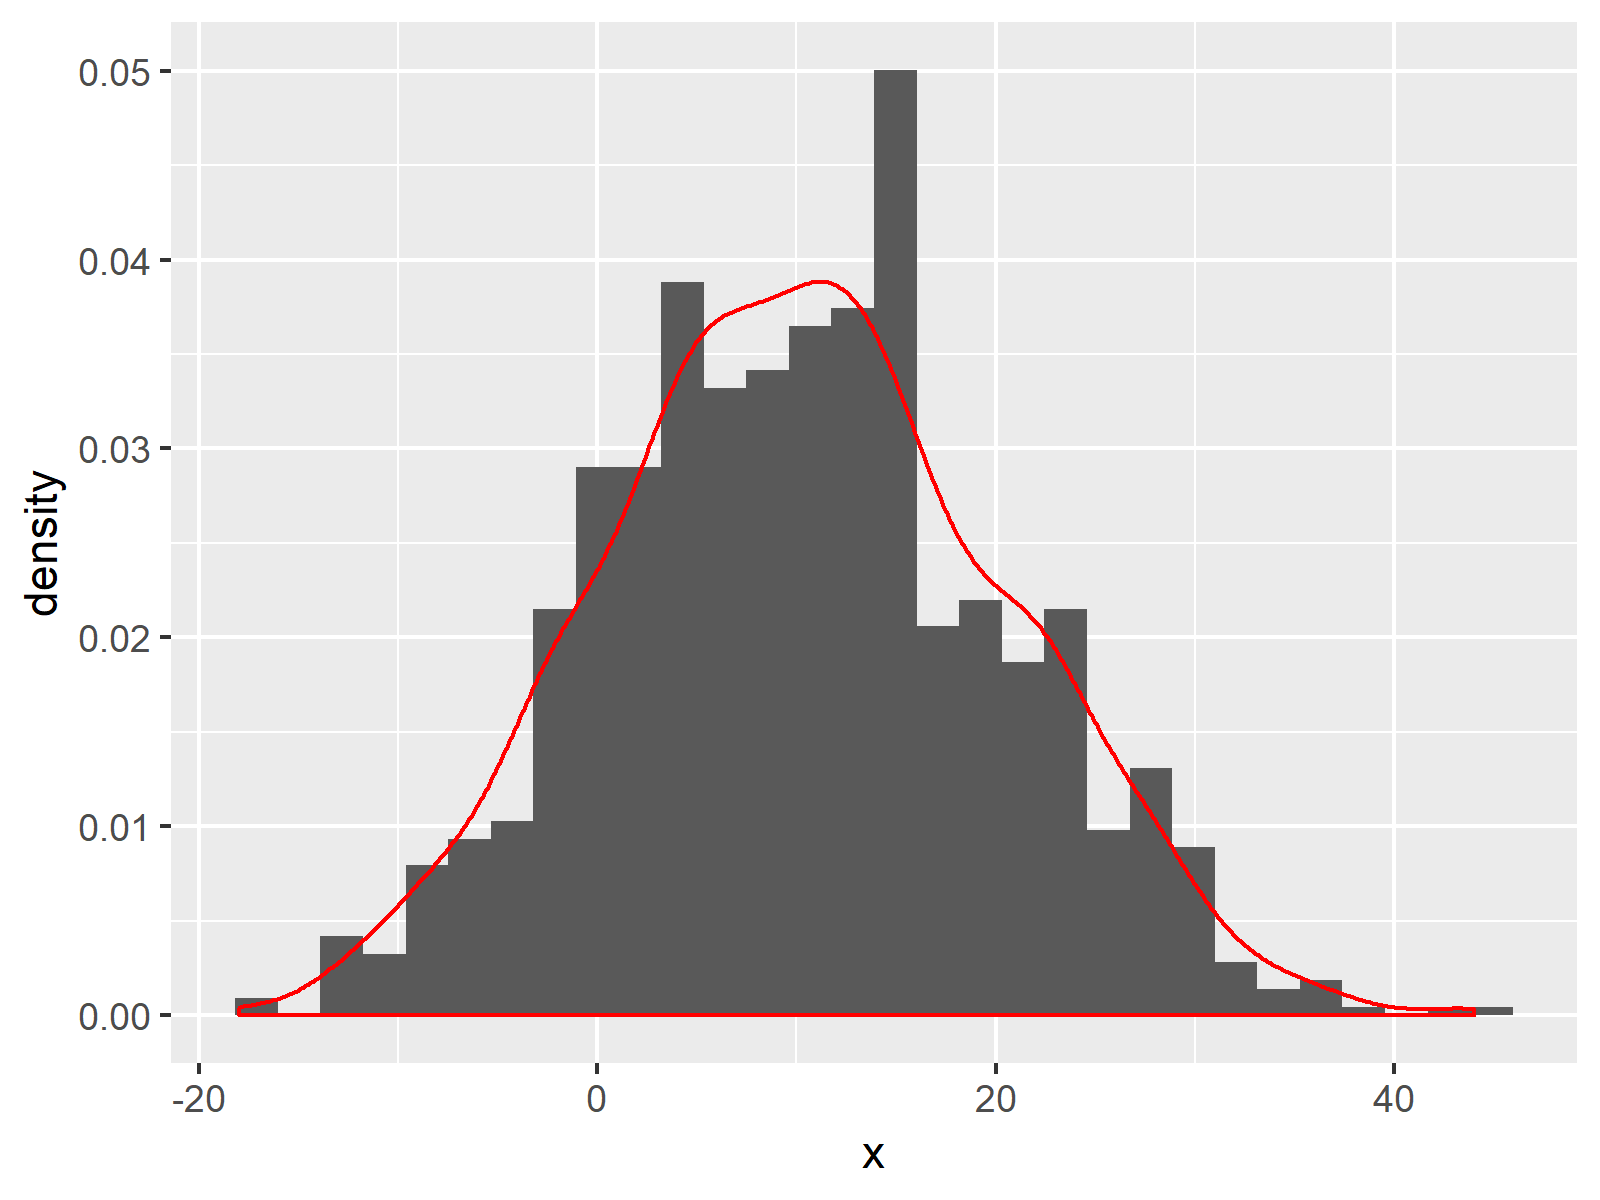 ggplot2 R Histogram and Fitted Density Curve